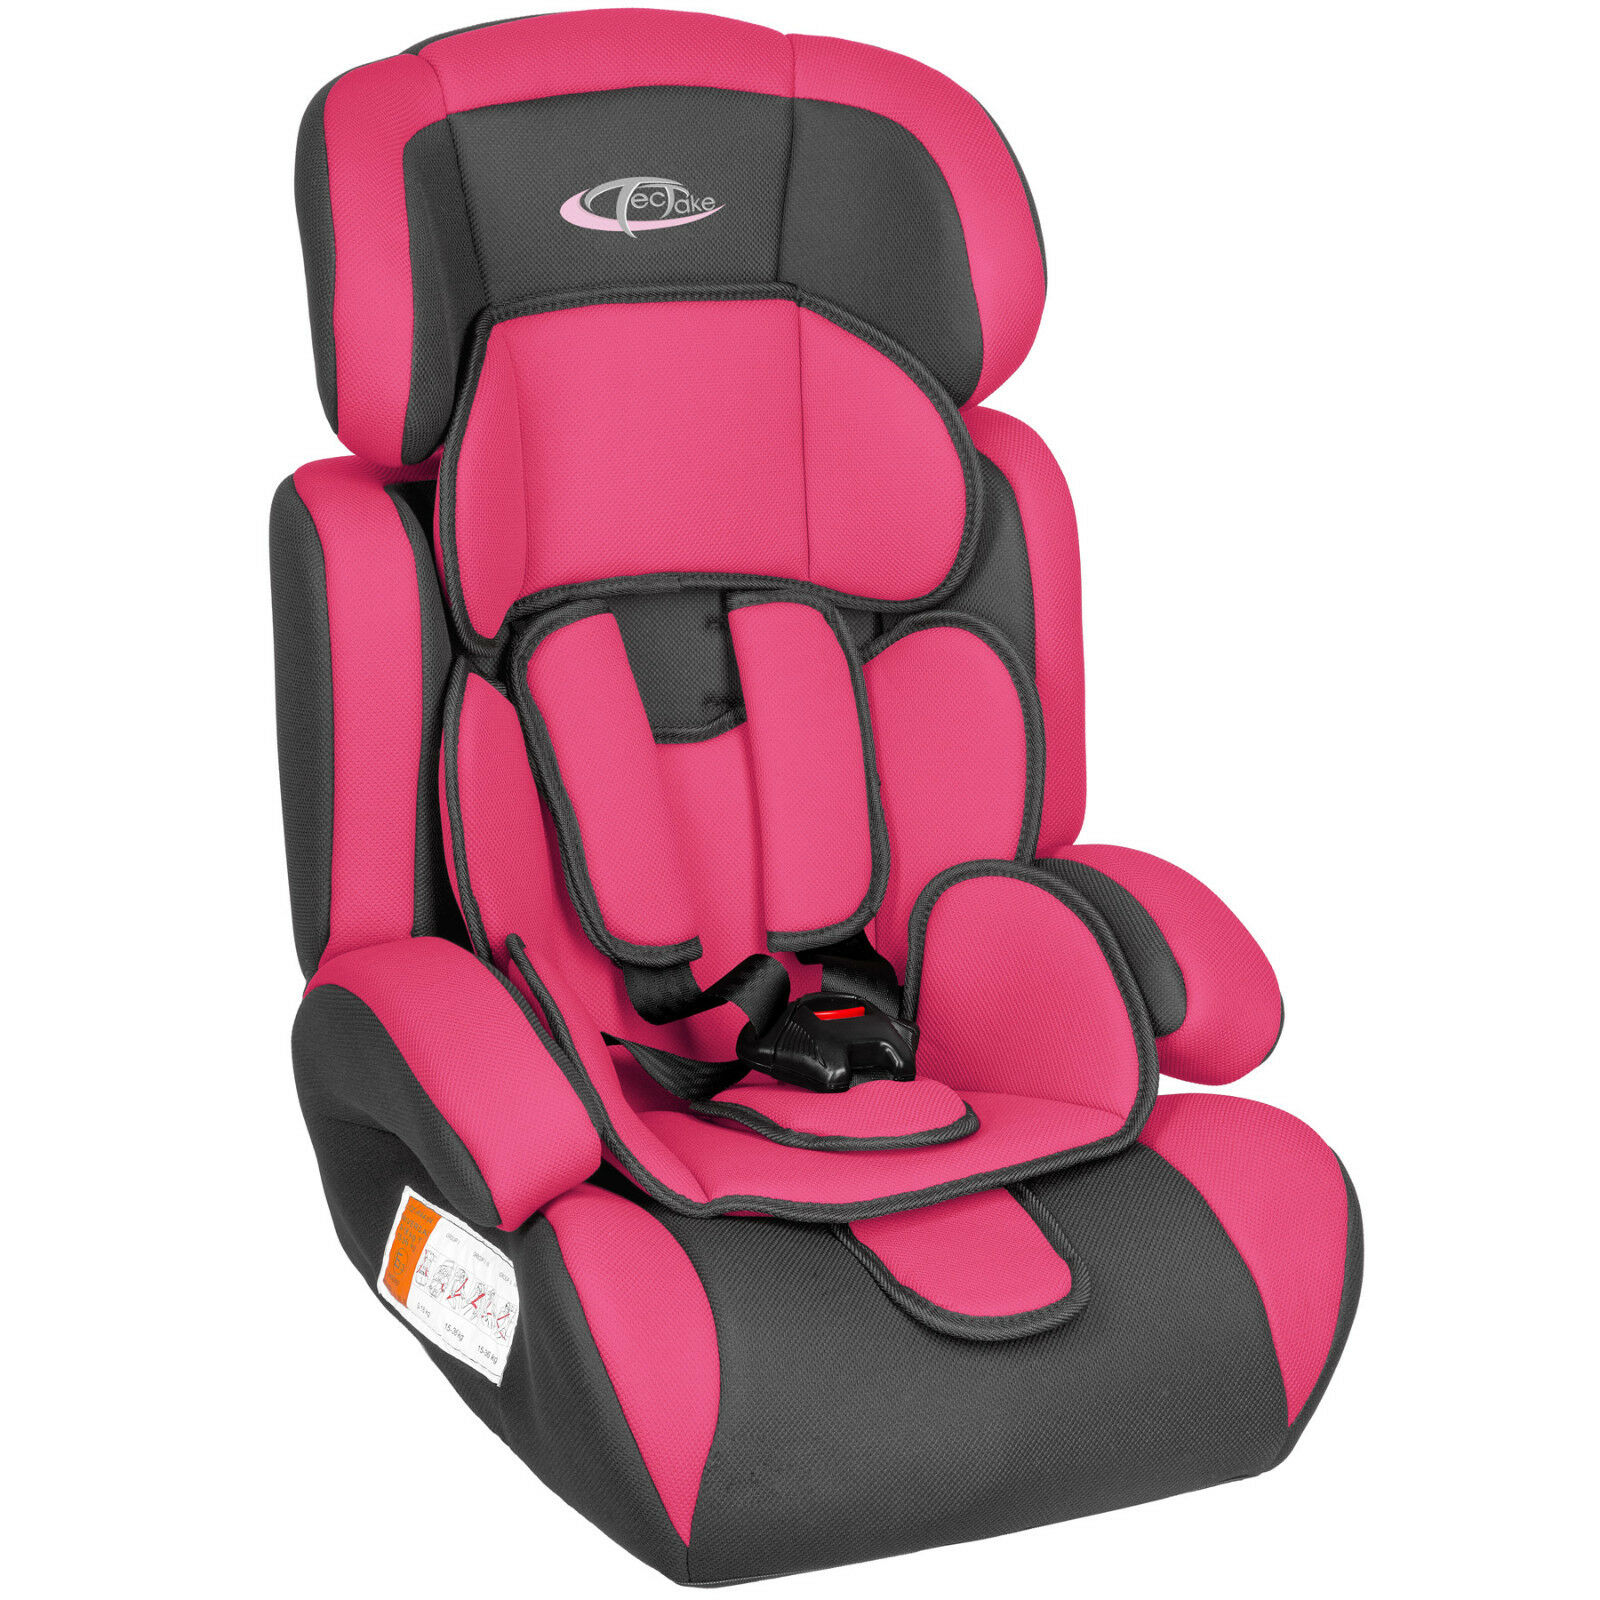 autokindersitz autositz autokindersitze kinderautositz 9 36 kg 1 2 3 pink wow eur 39 79. Black Bedroom Furniture Sets. Home Design Ideas